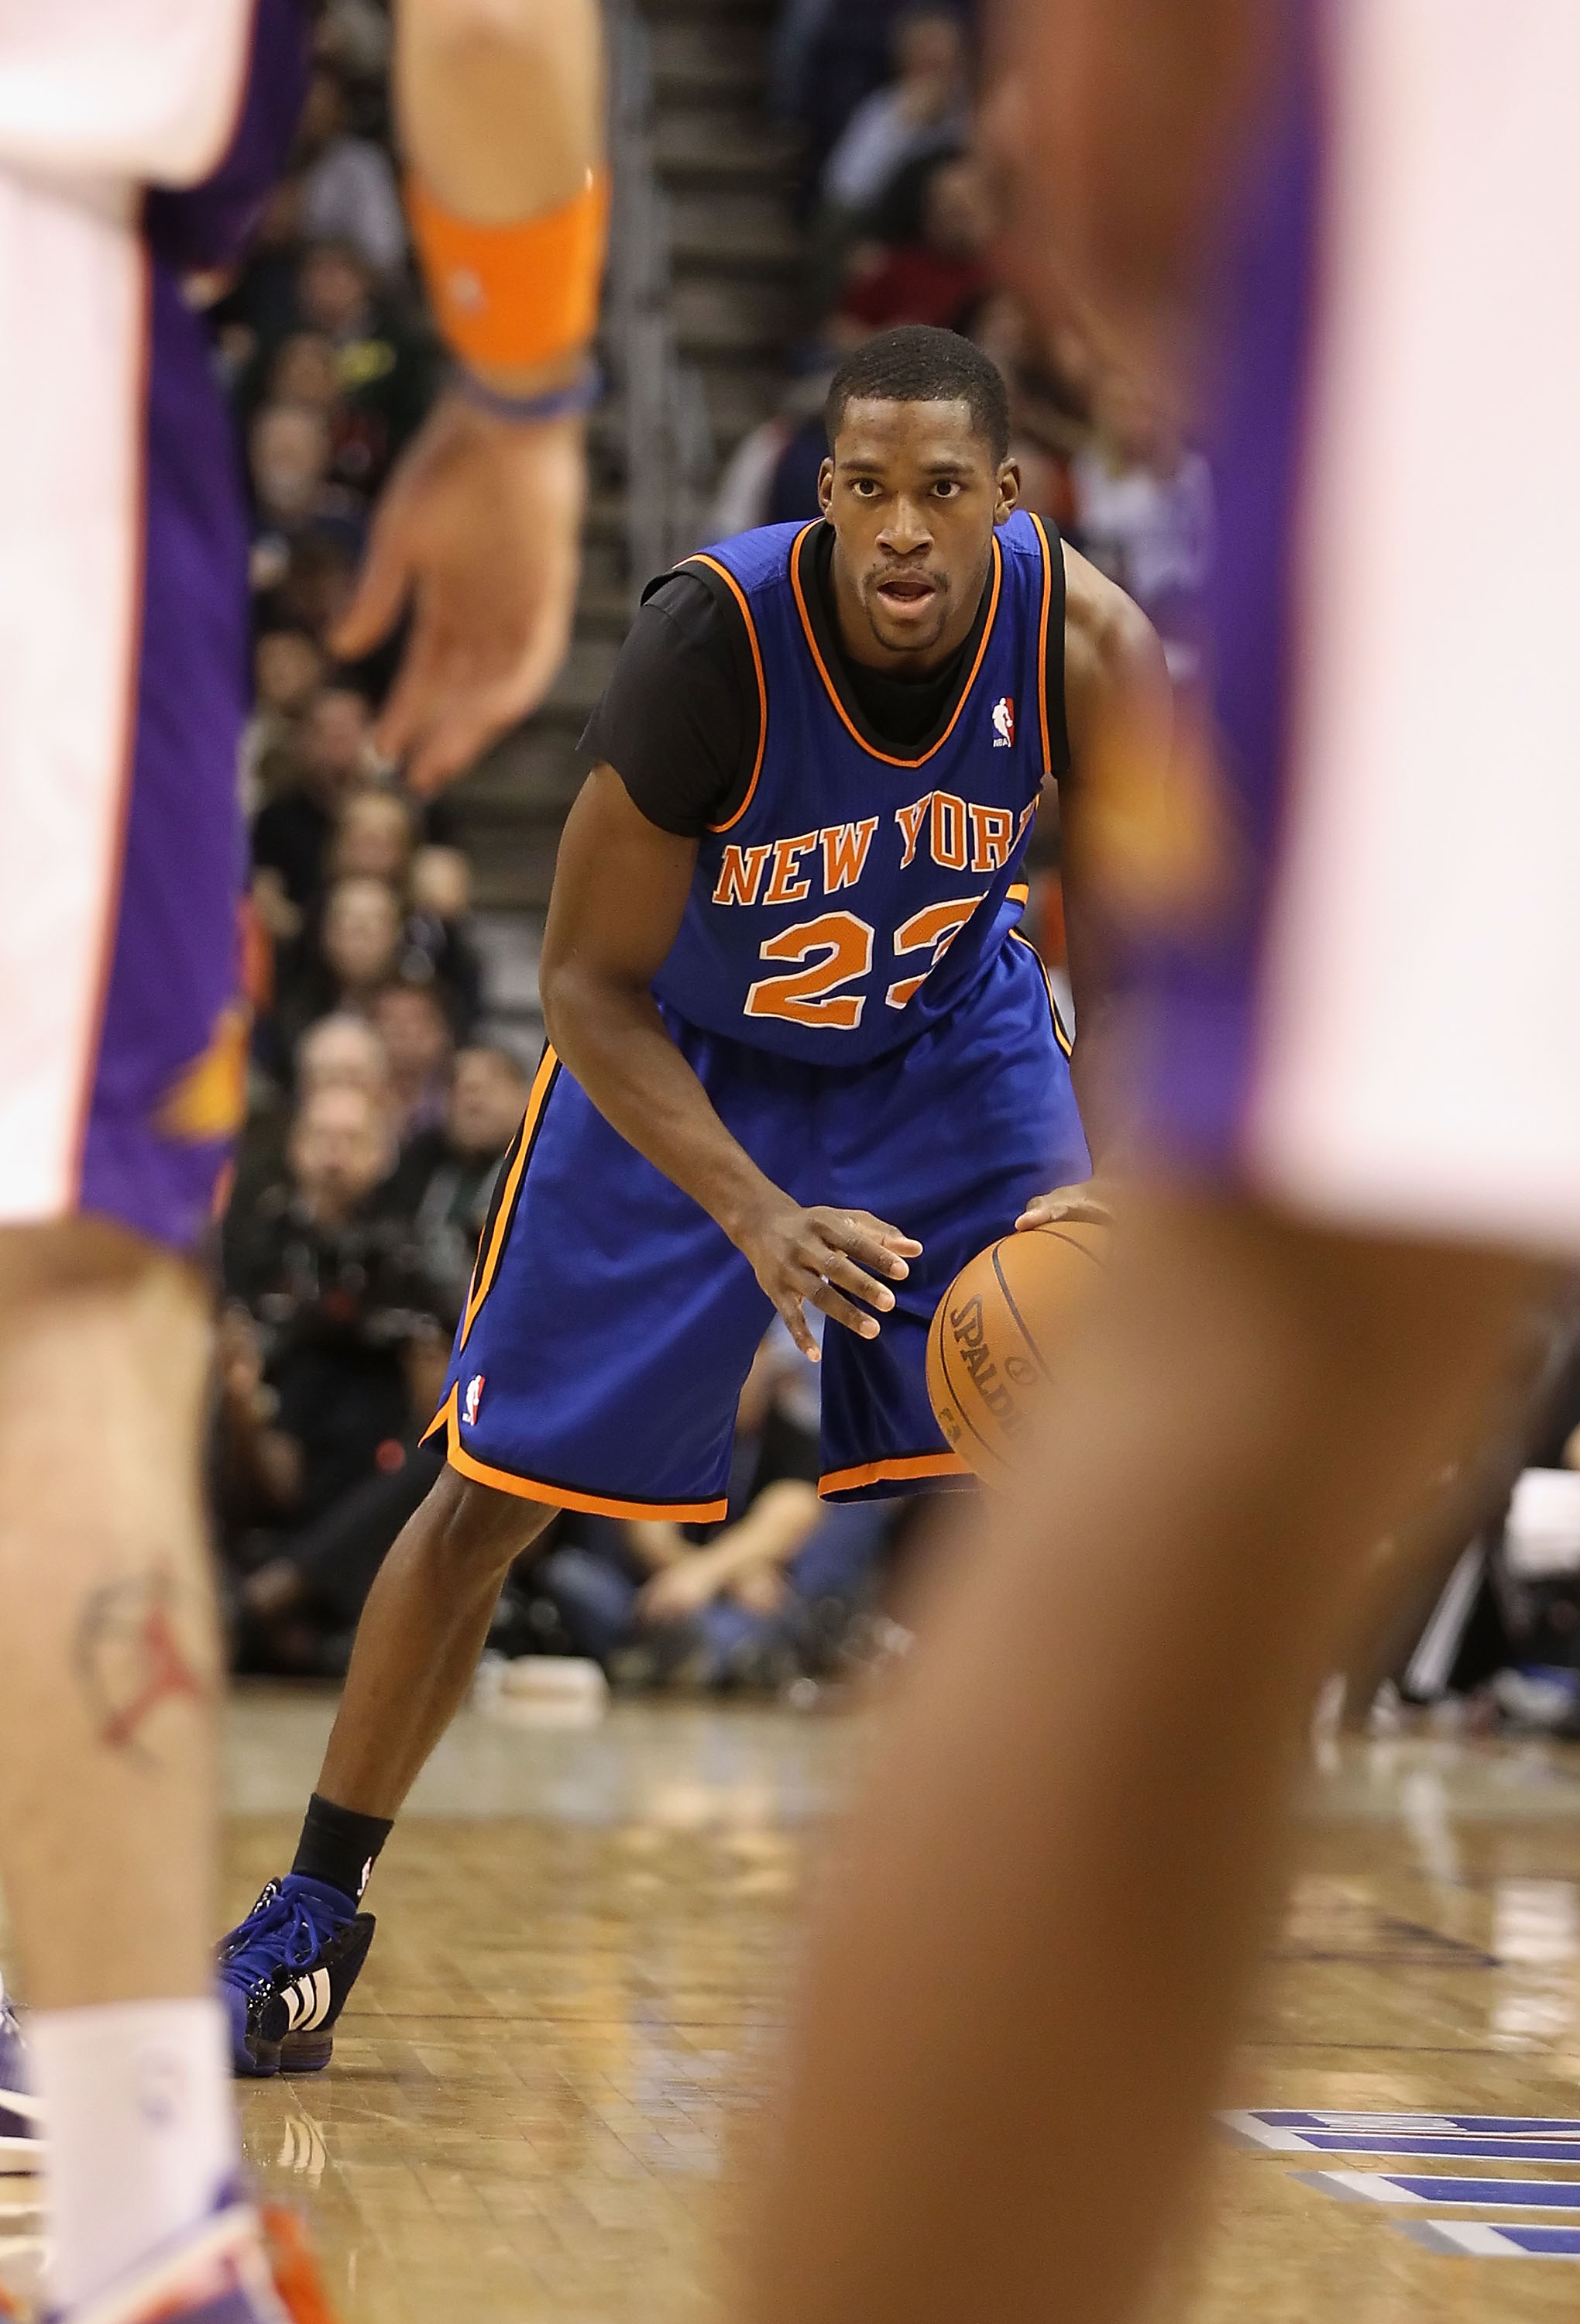 PHOENIX, AZ - JANUARY 07:  Toney Douglas #23 of the New York Knicks handles the ball during the NBA game against the Phoenix Suns at US Airways Center on January 7, 2011 in Phoenix, Arizona.  NOTE TO USER: User expressly acknowledges and agrees that, by d